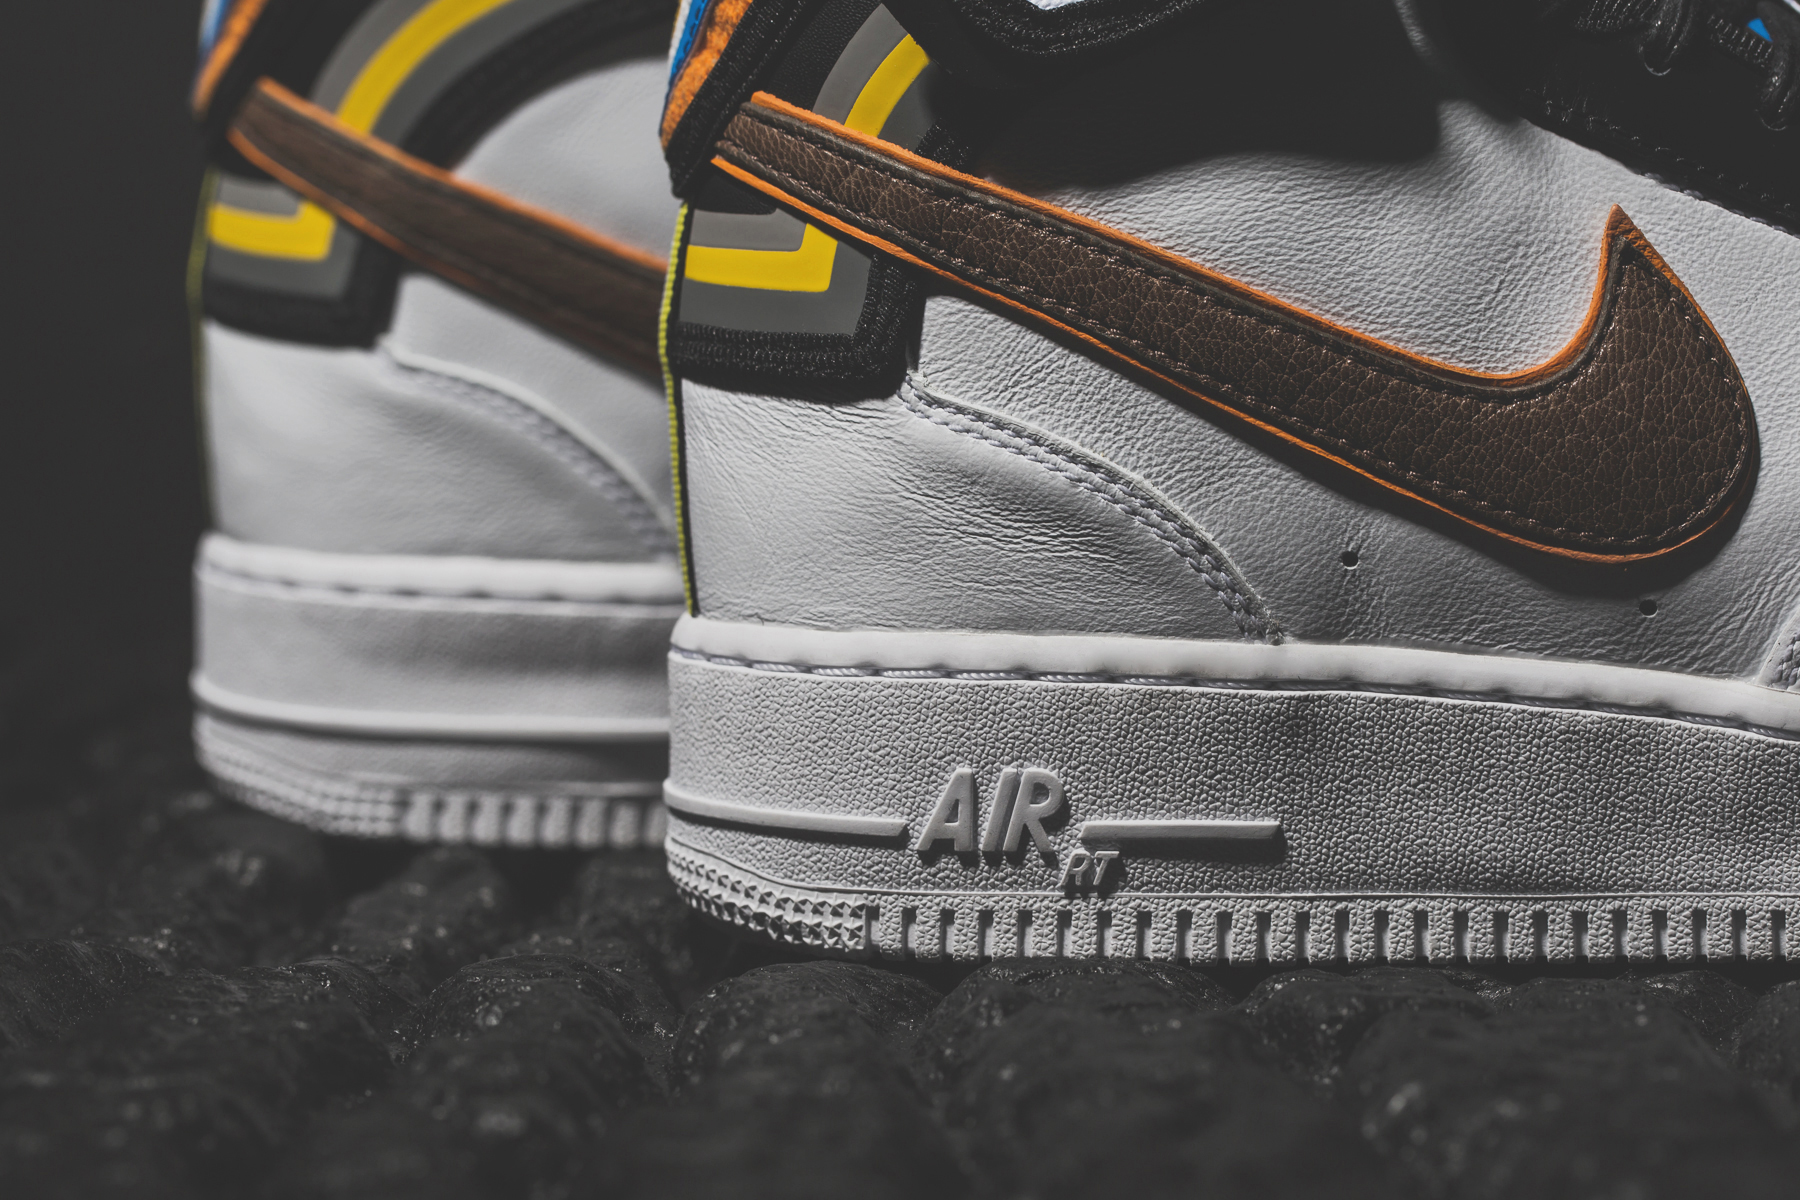 http://hypebeast.com/2014/3/a-closer-look-at-the-nike-r-t-air-force-1-mid